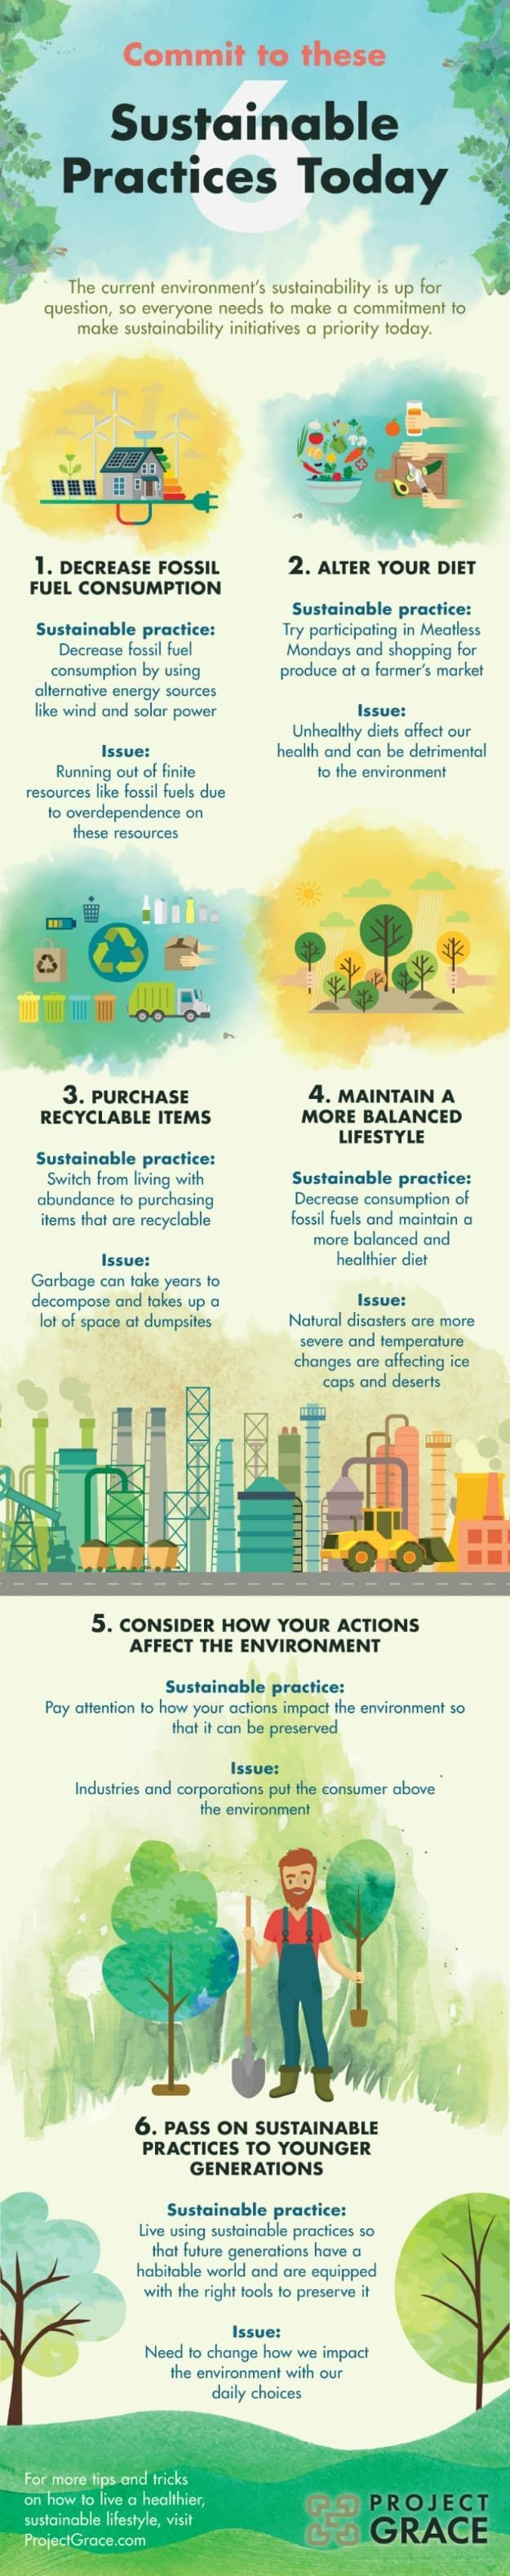 Give future generations a better place than it is today by committing to these sustainable practices!